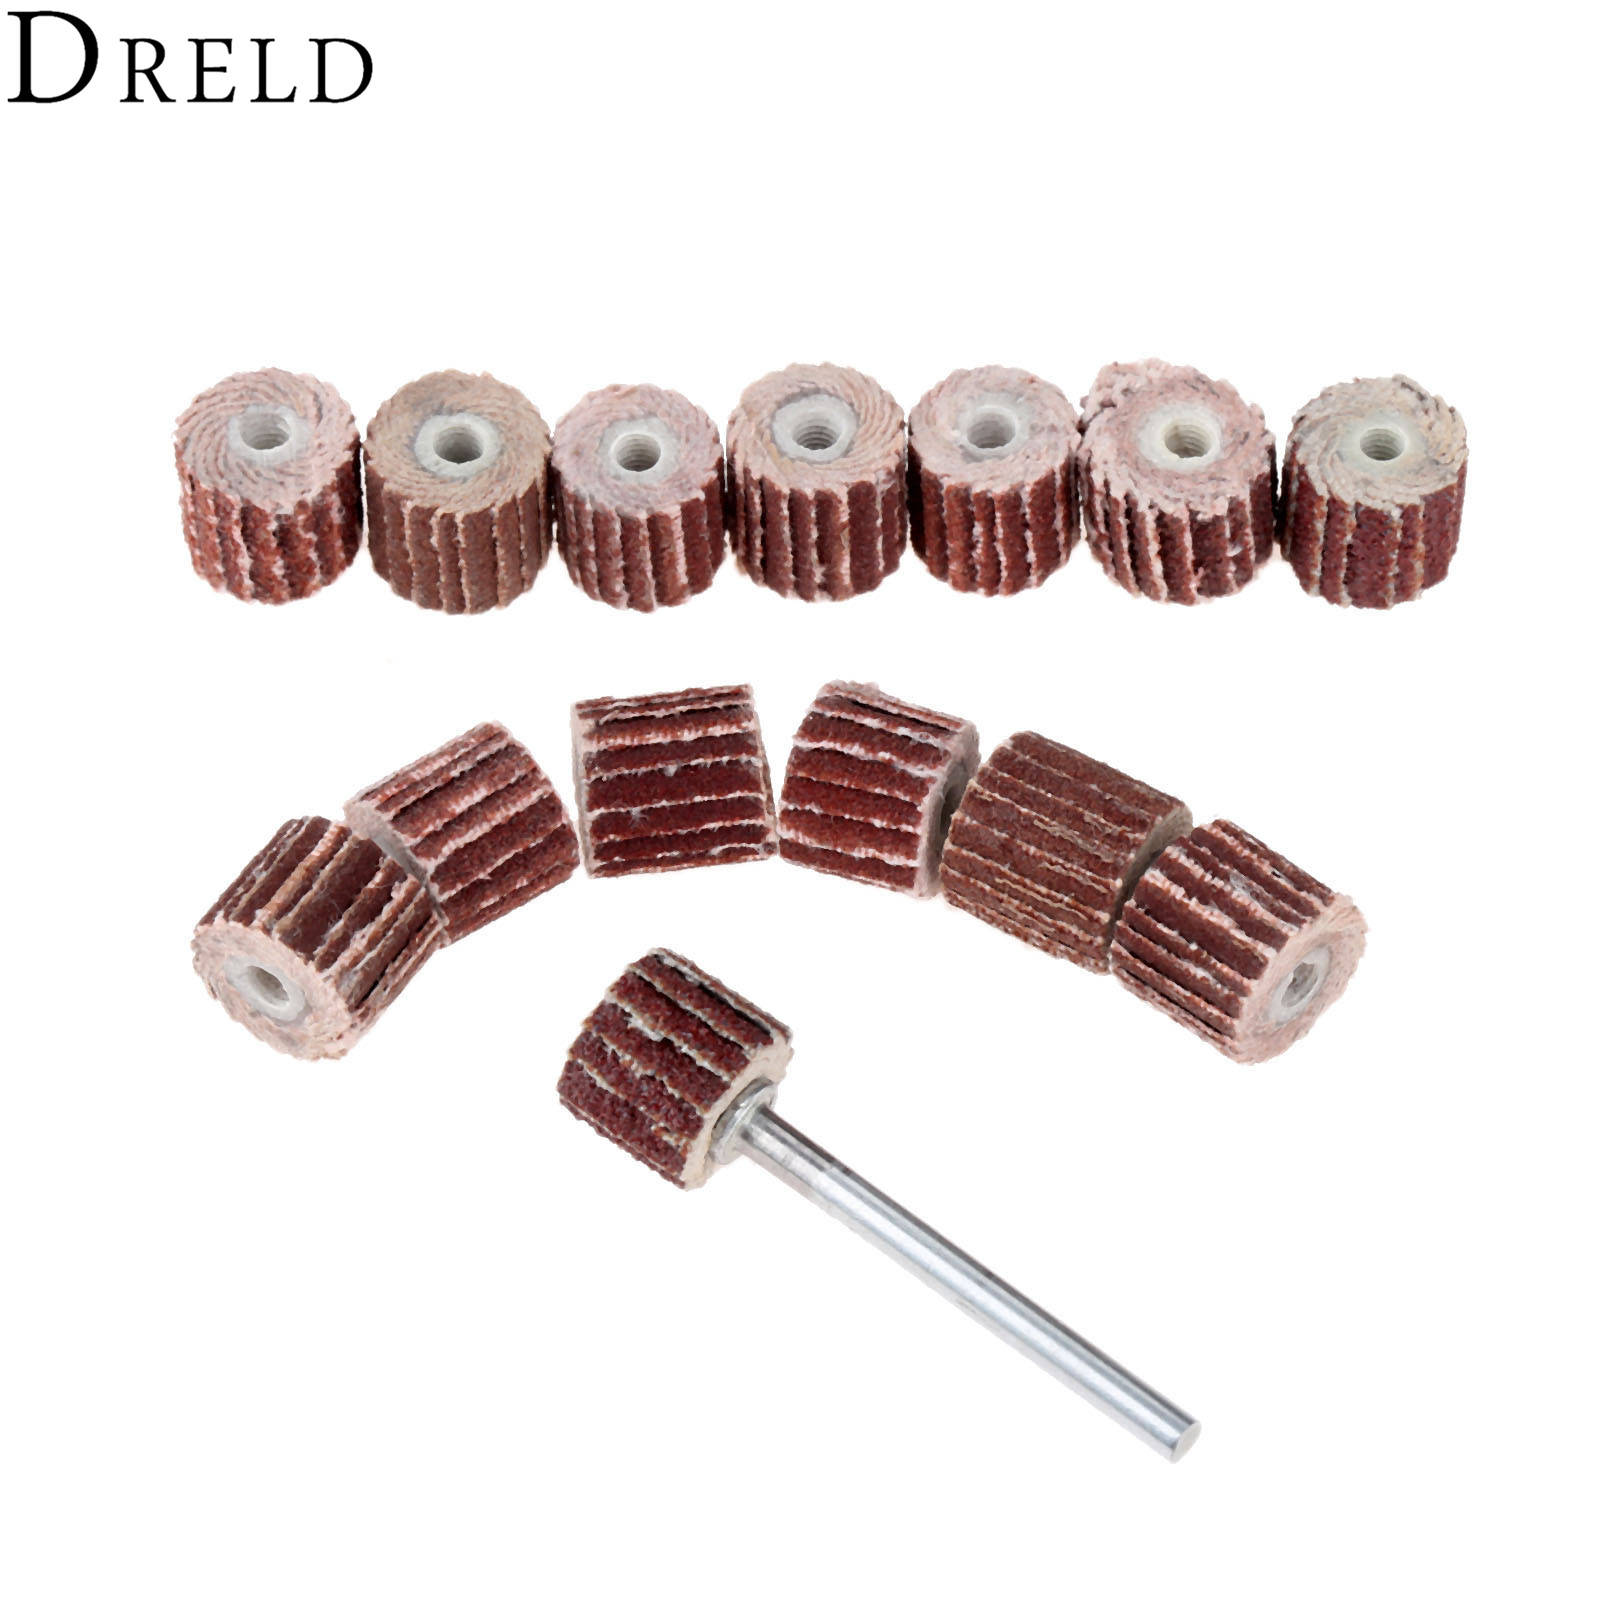 DRELD 10Pcs Dremel Accessories 10mm Sanding Flap Wheel Disc Grinding Flap Wheels Brush For Rotary Tool With Mandrel 3mm Shank